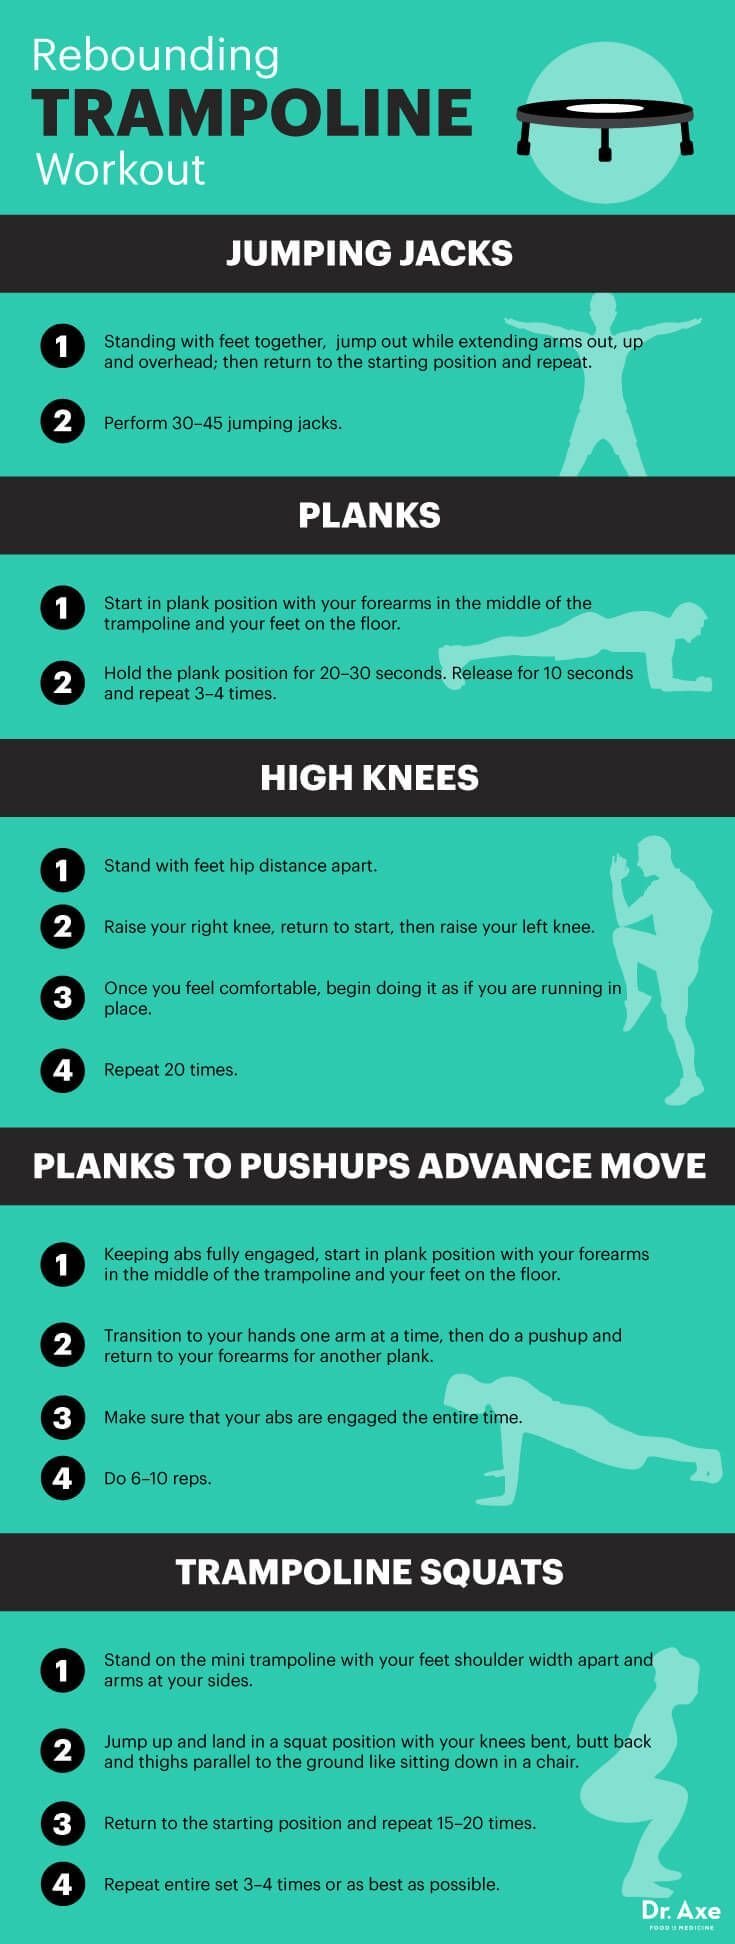 Running to Lose Weight - Lean Belly Breakthrough - Cant wait until I can get a trampoline and try working out on it. :) - Get the Complete Lean Belly Breakthrough System - Learn how to lose weight running